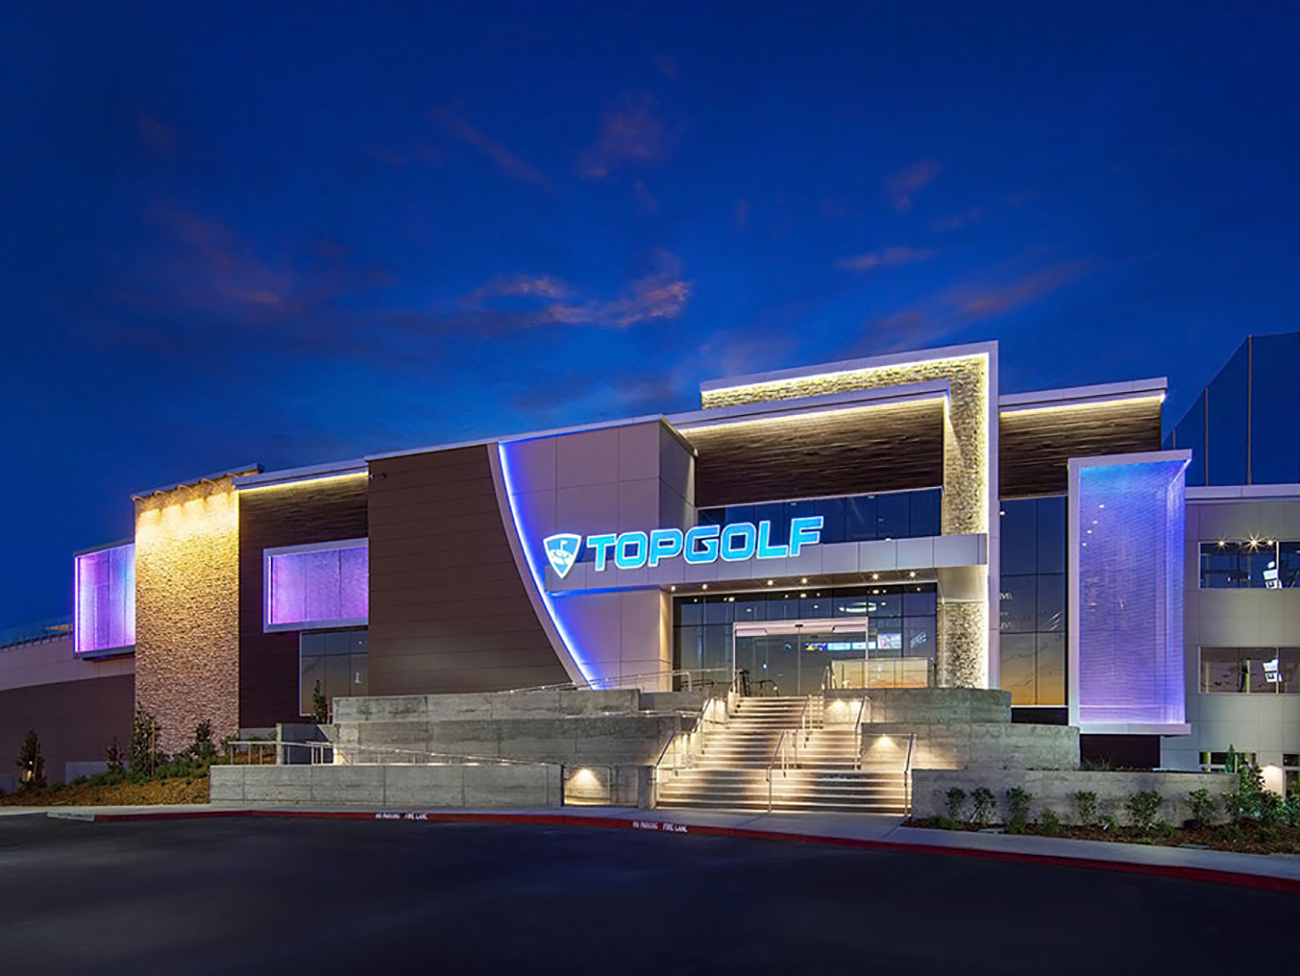 Jobs News Orlando Job Listings City Of Orlando Topgolf Is On Pace For An Early 2017 Opening Charlotte